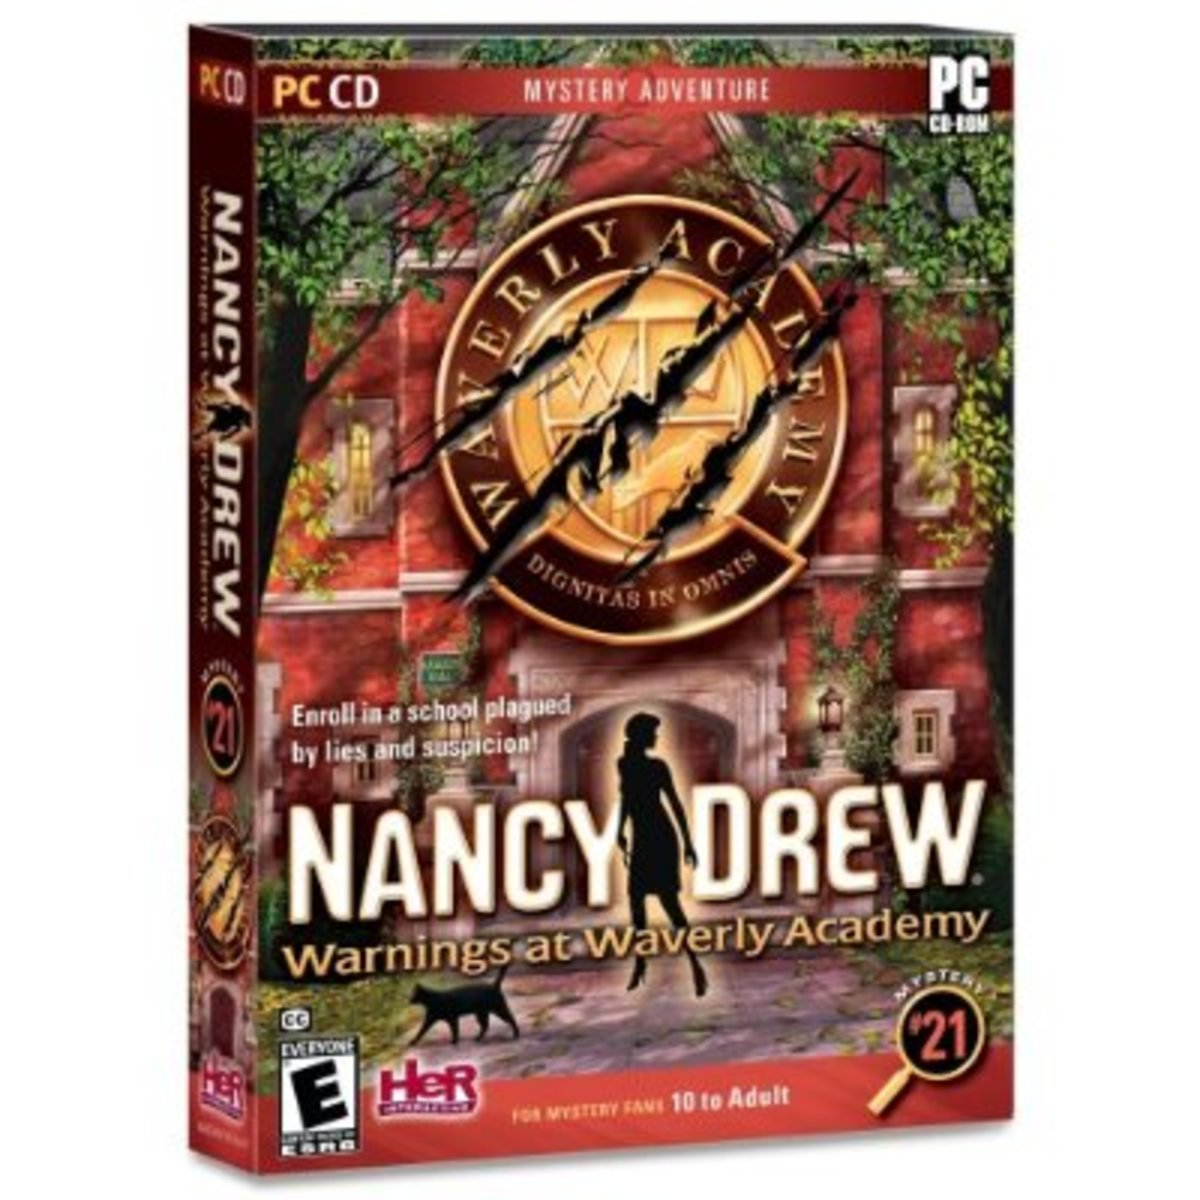 Nancy Drew: Warnings at Waverly Academy game cover